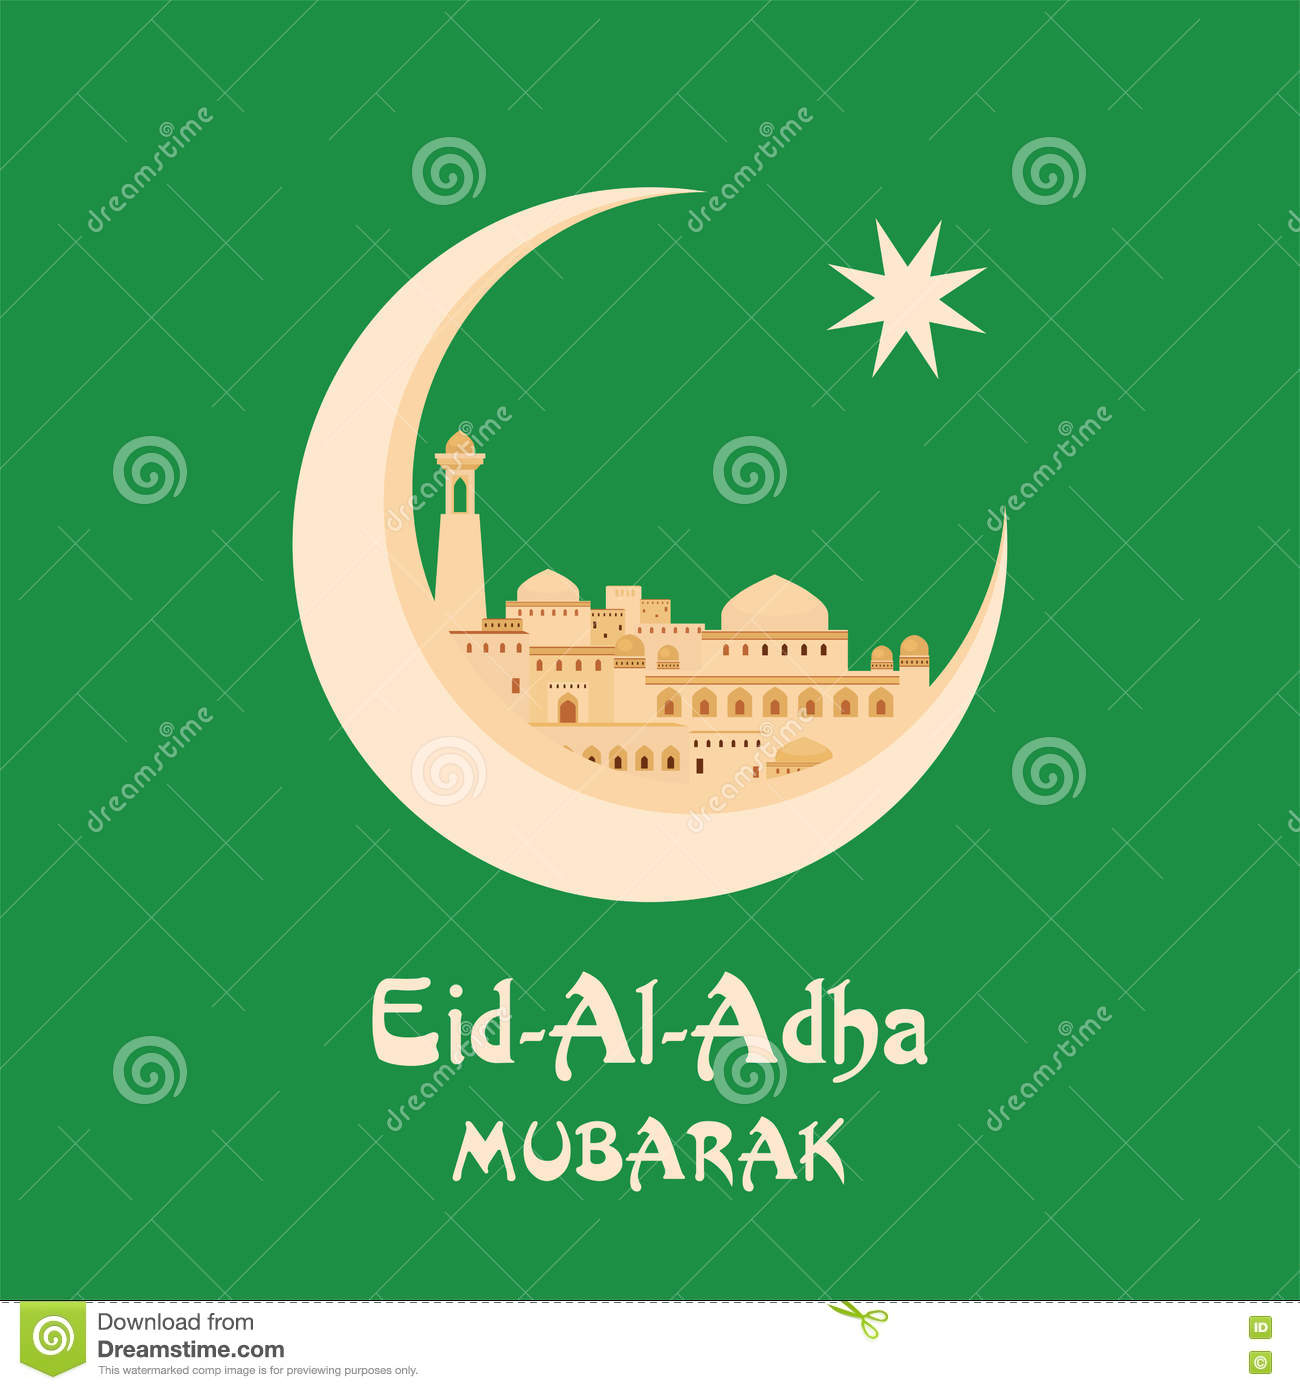 Eid al adha greeting card stock vector illustration of hajj 75564957 eid al adha greeting card m4hsunfo Image collections